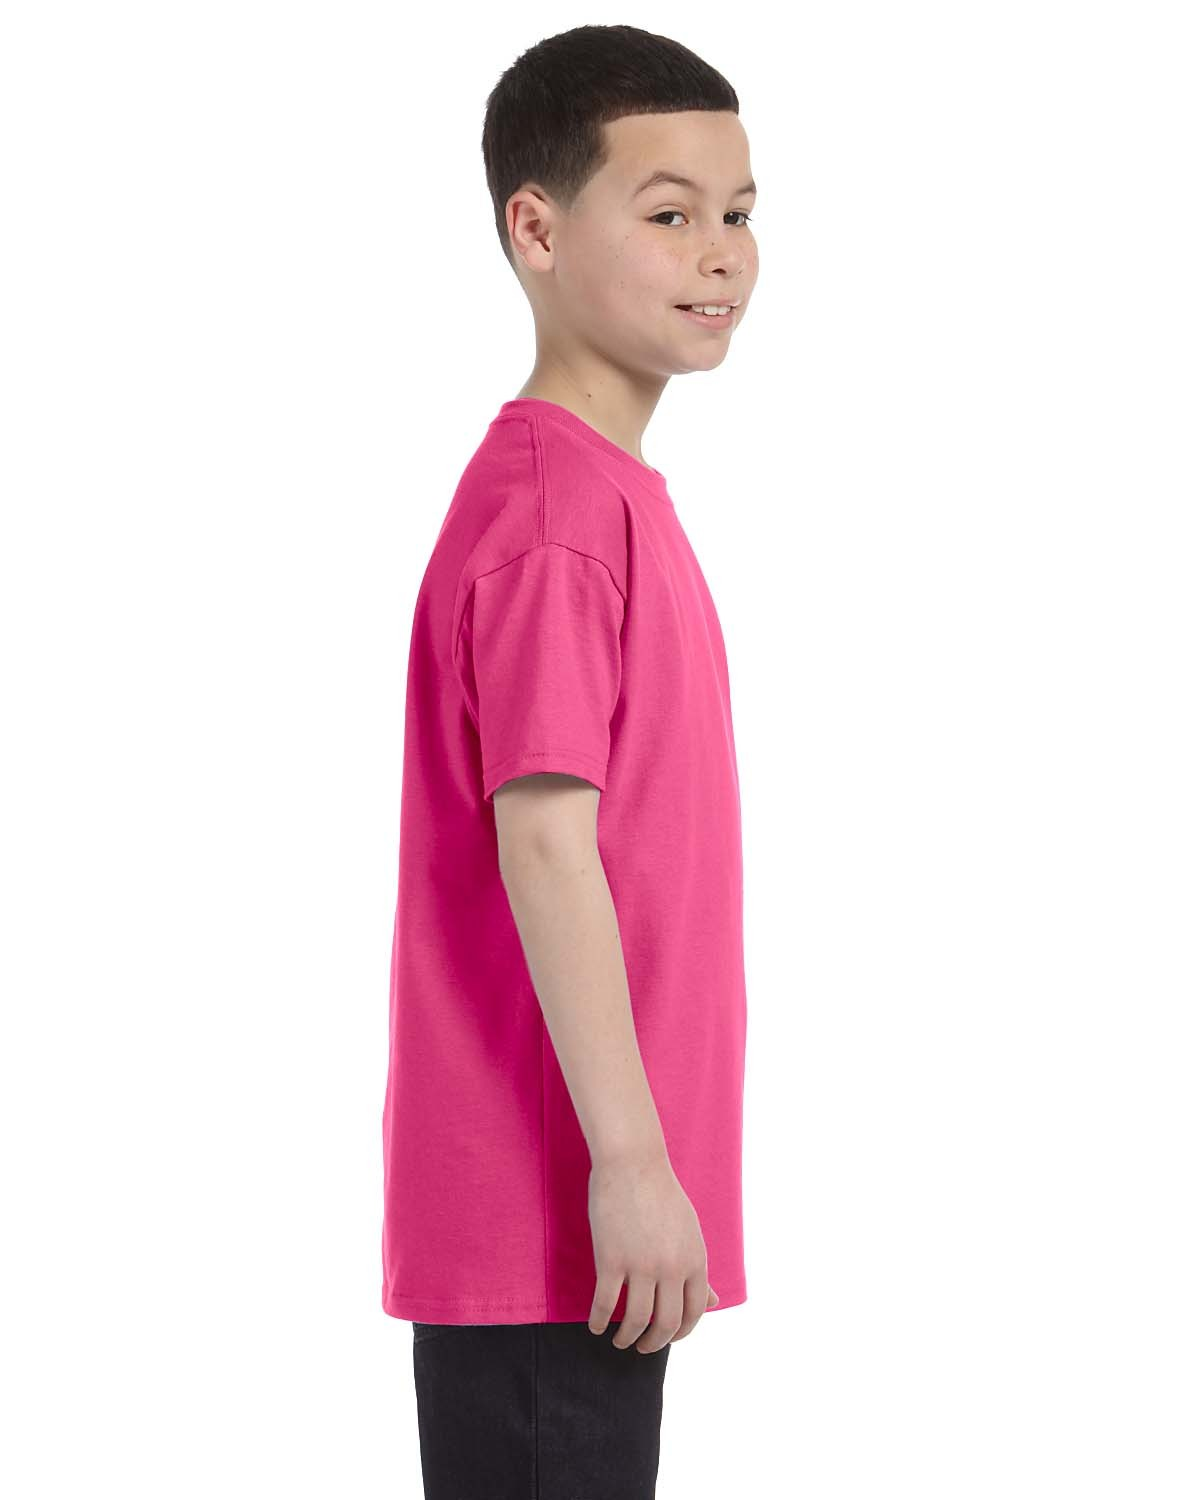 54500 Hanes WOW PINK